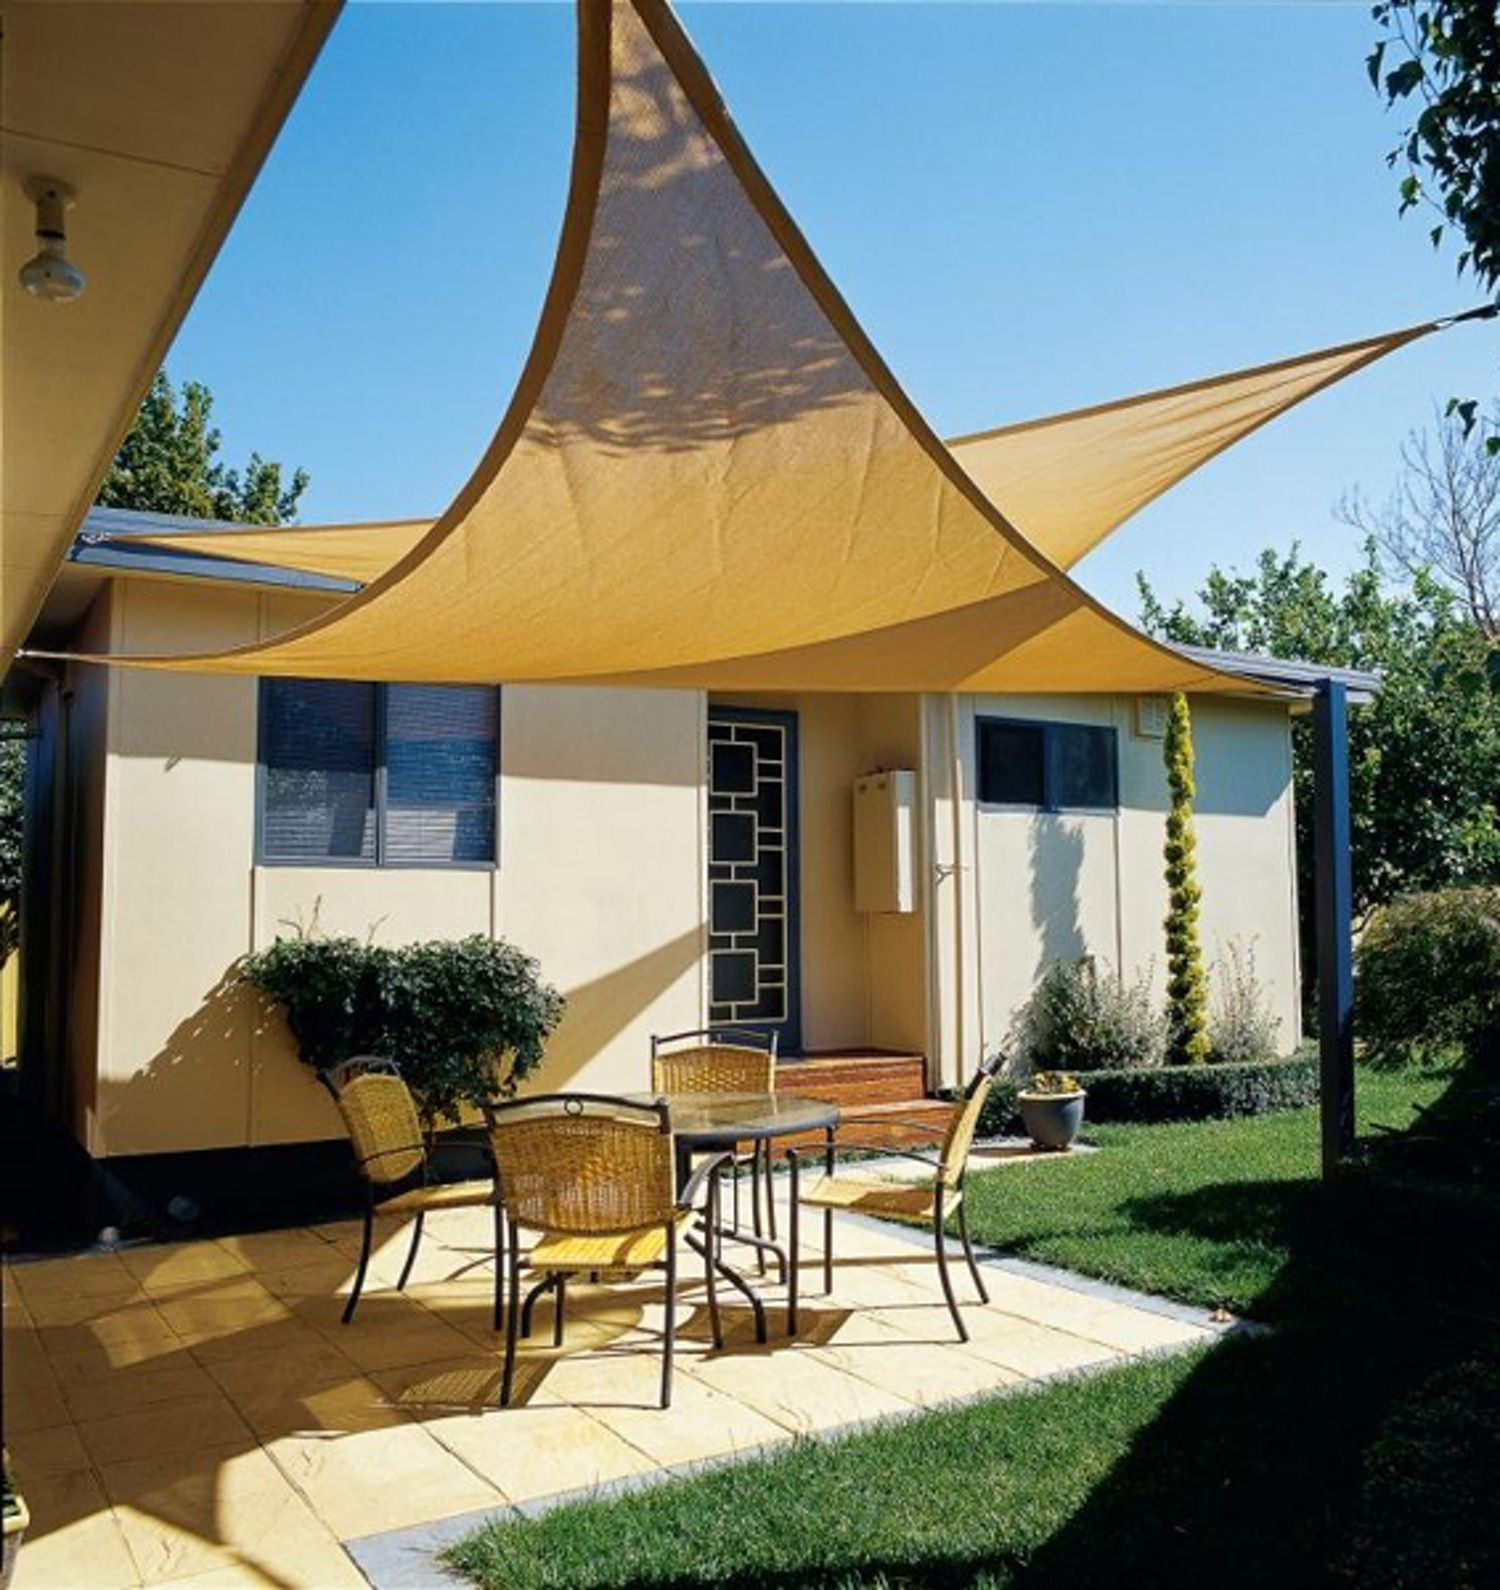 patio fibi the sail shade home sails ideas awnings ltd best awning house for